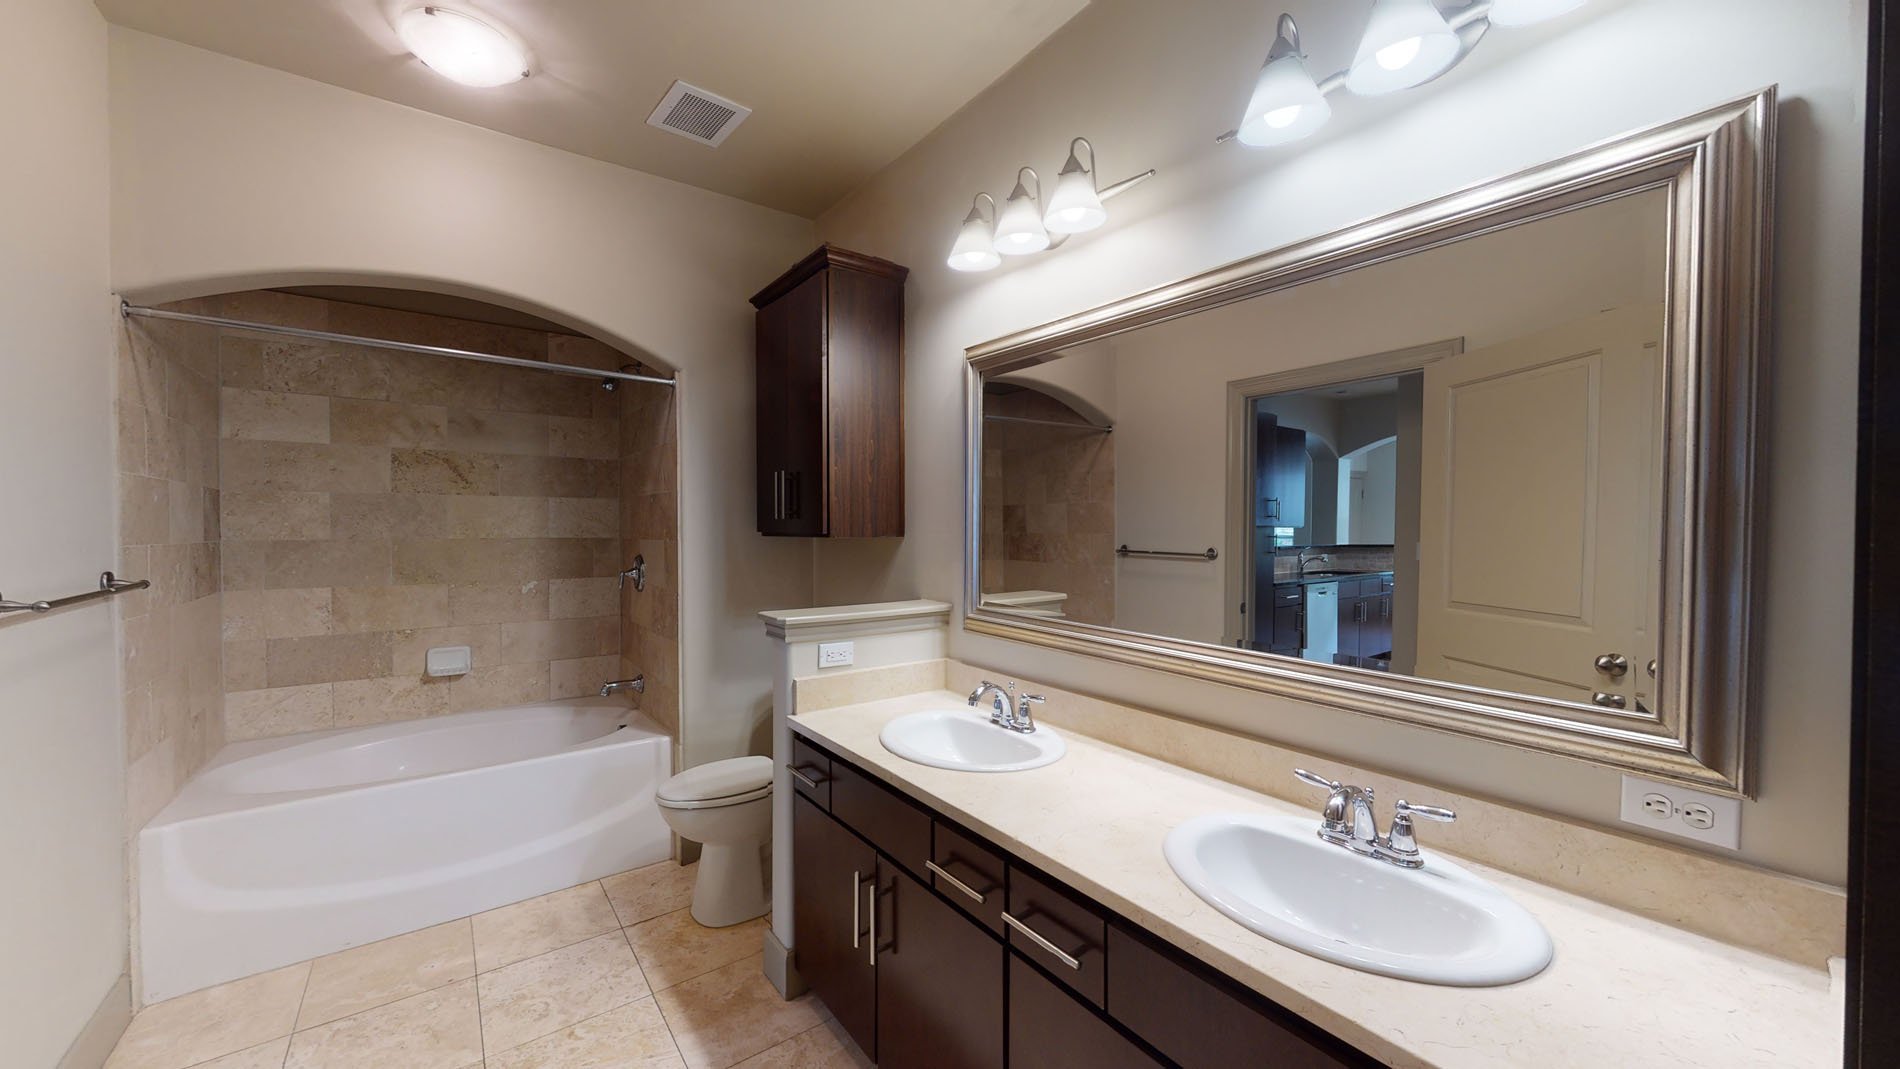 1 Bed, 1 Bath apartment in Braintree for $2,419